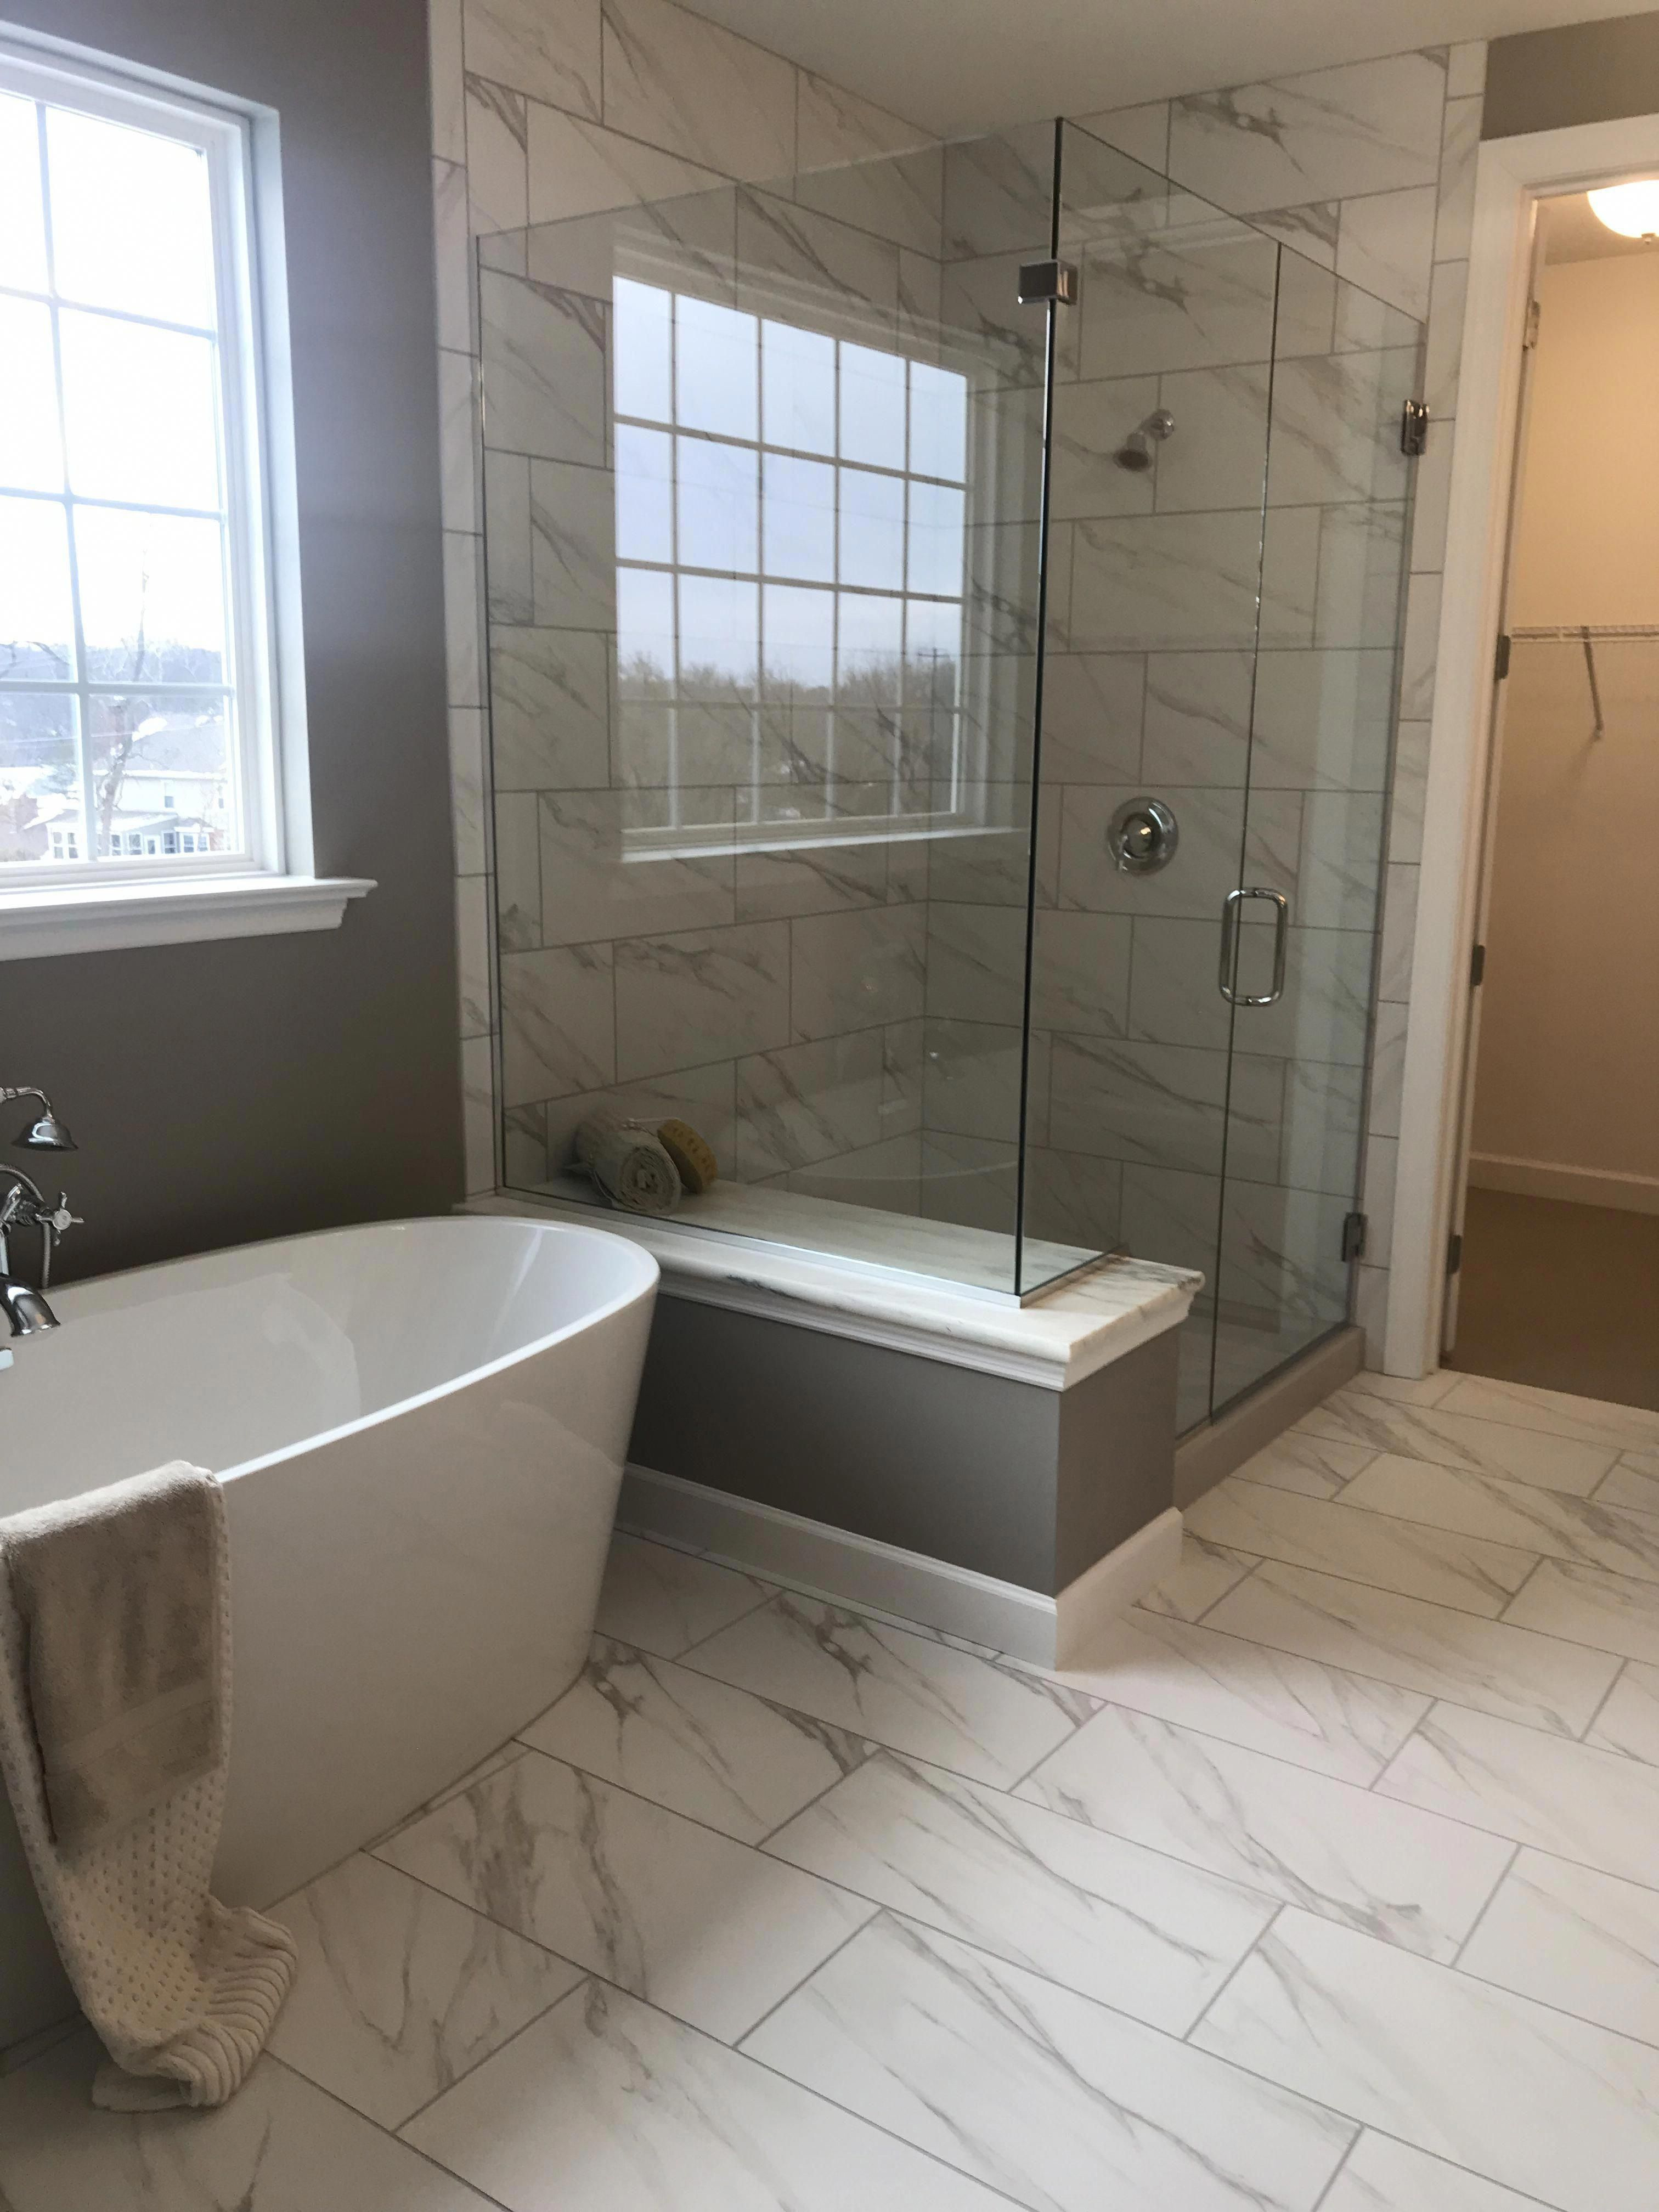 Have A Peek At These Individuals Small Bathroom Ideas Remodel Bathroom Remodel Master Master Bedroom Bathroom Bathrooms Remodel